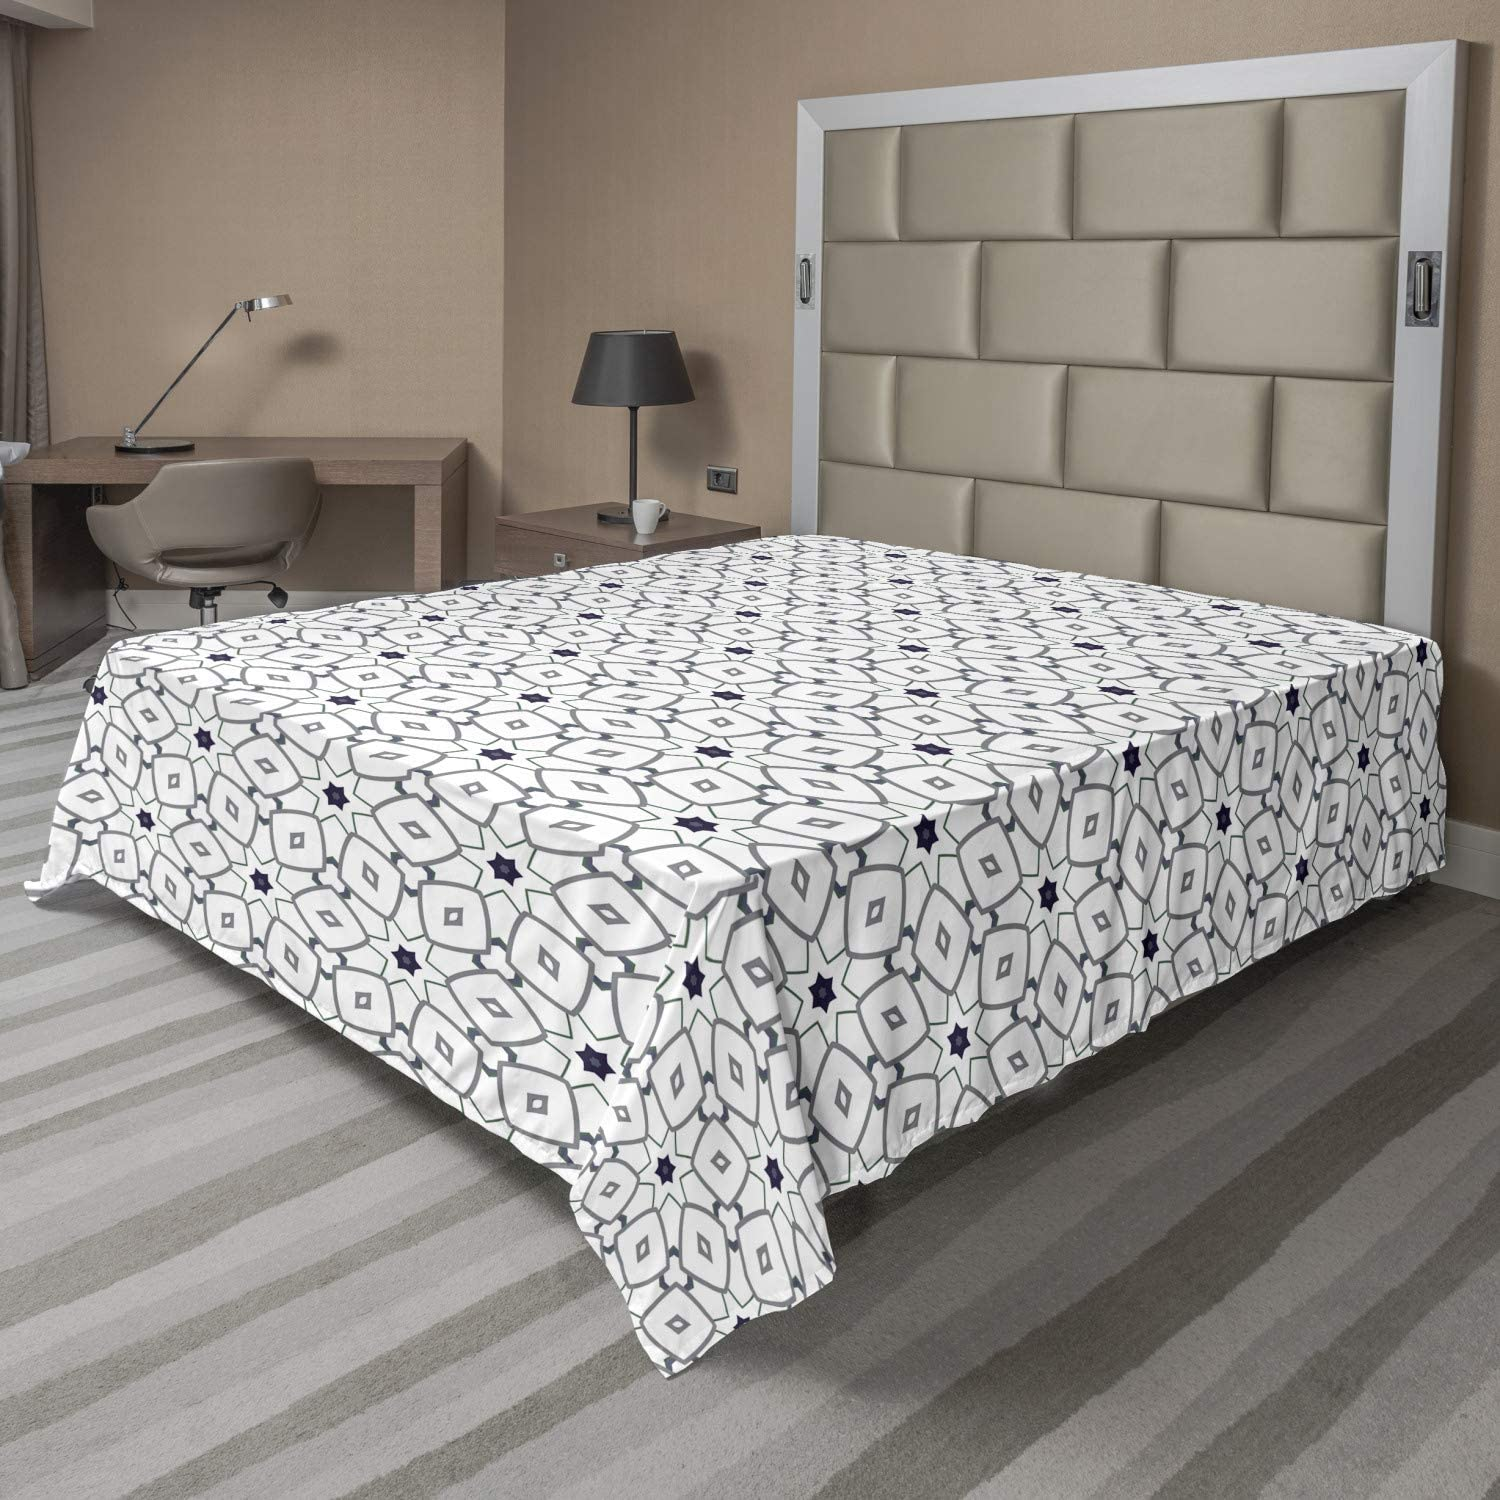 Ambesonne Very popular! Abstract Flat Sheet safety Geometric Design of Ornamental De